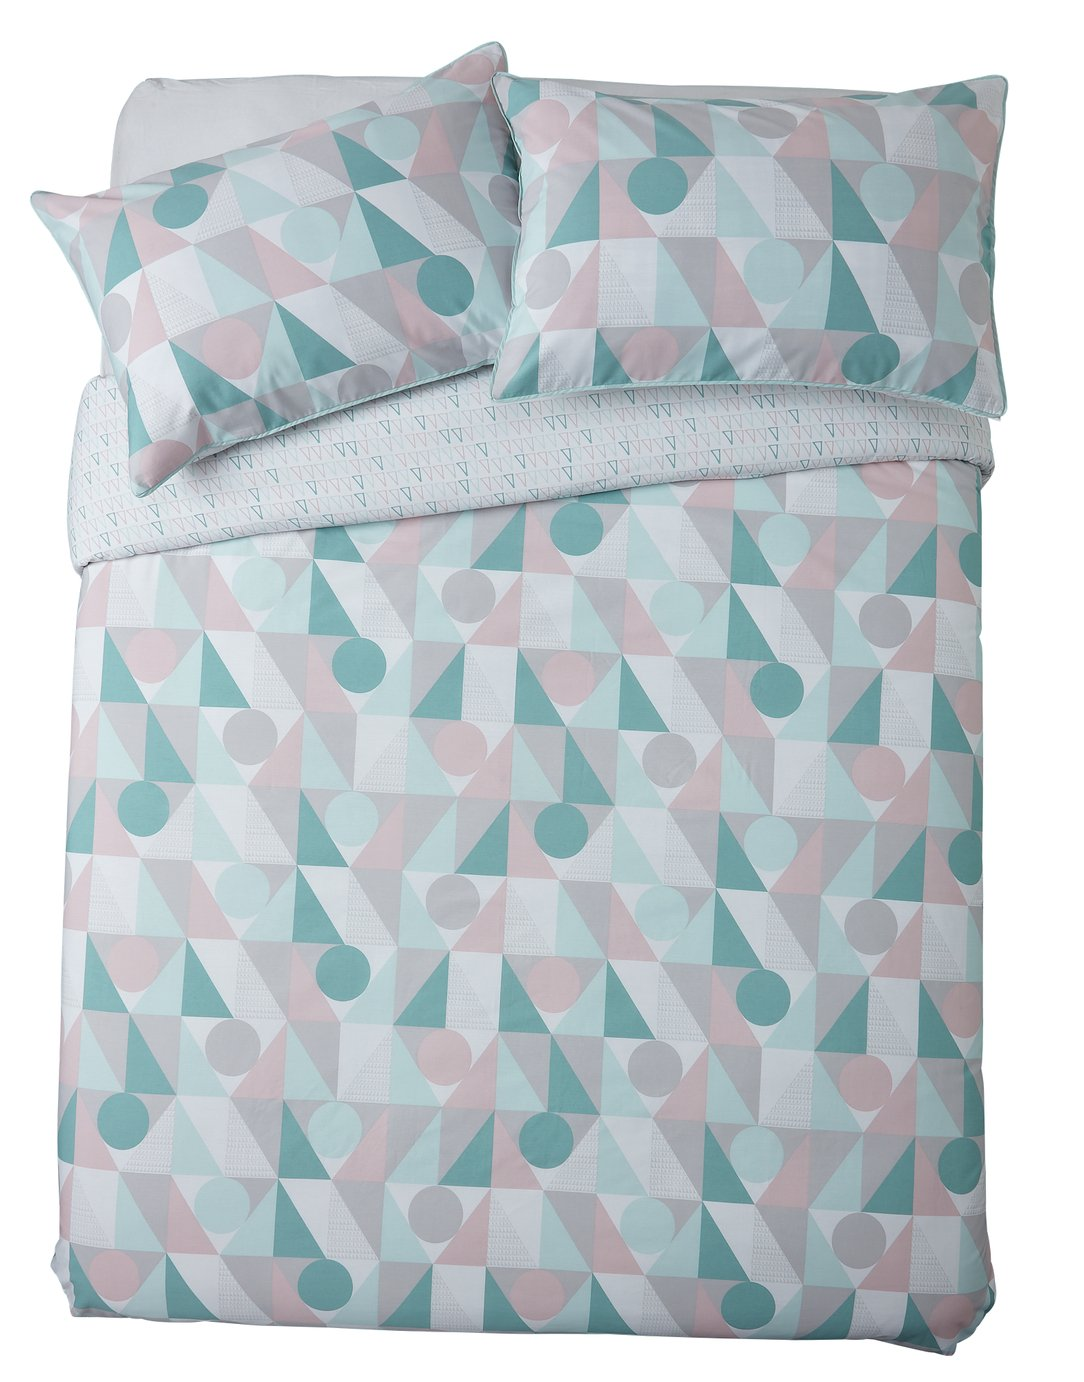 Sainsbury's Home Triangle Print Bedding Set - Double